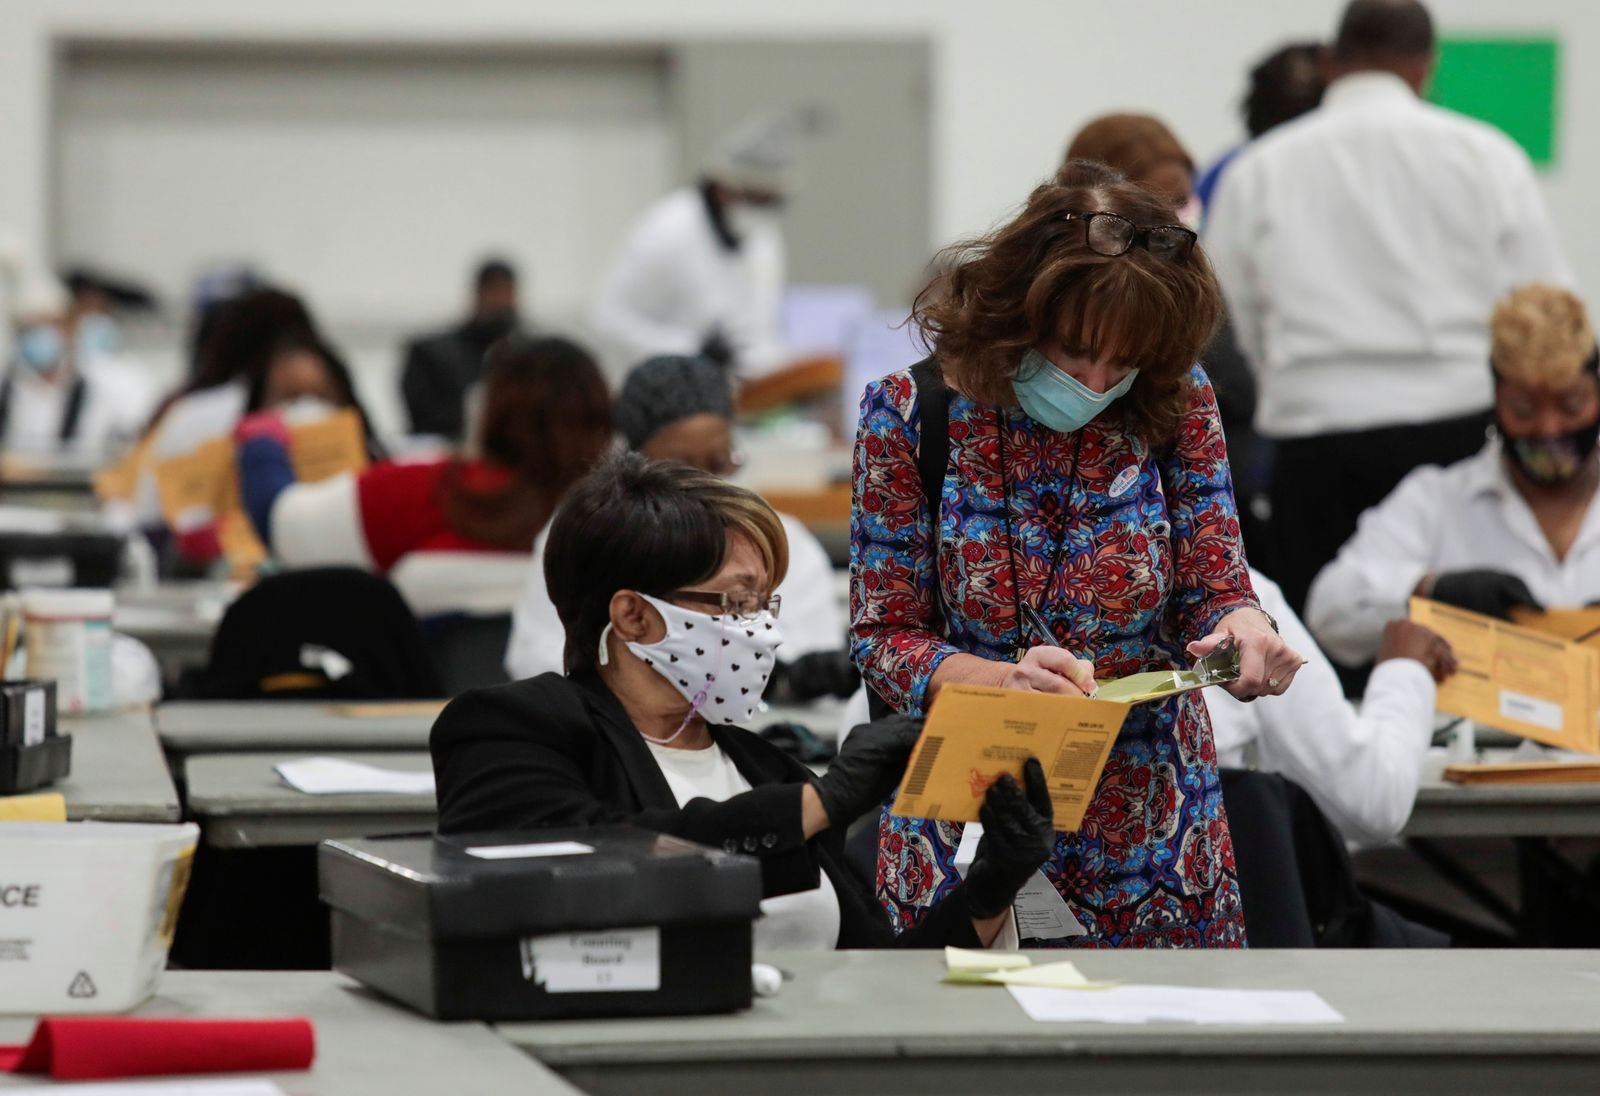 A poll challenger looks at absentee ballots to be counted on election day being processed by poll workers, at the TCF Center in Detroit, Michigan